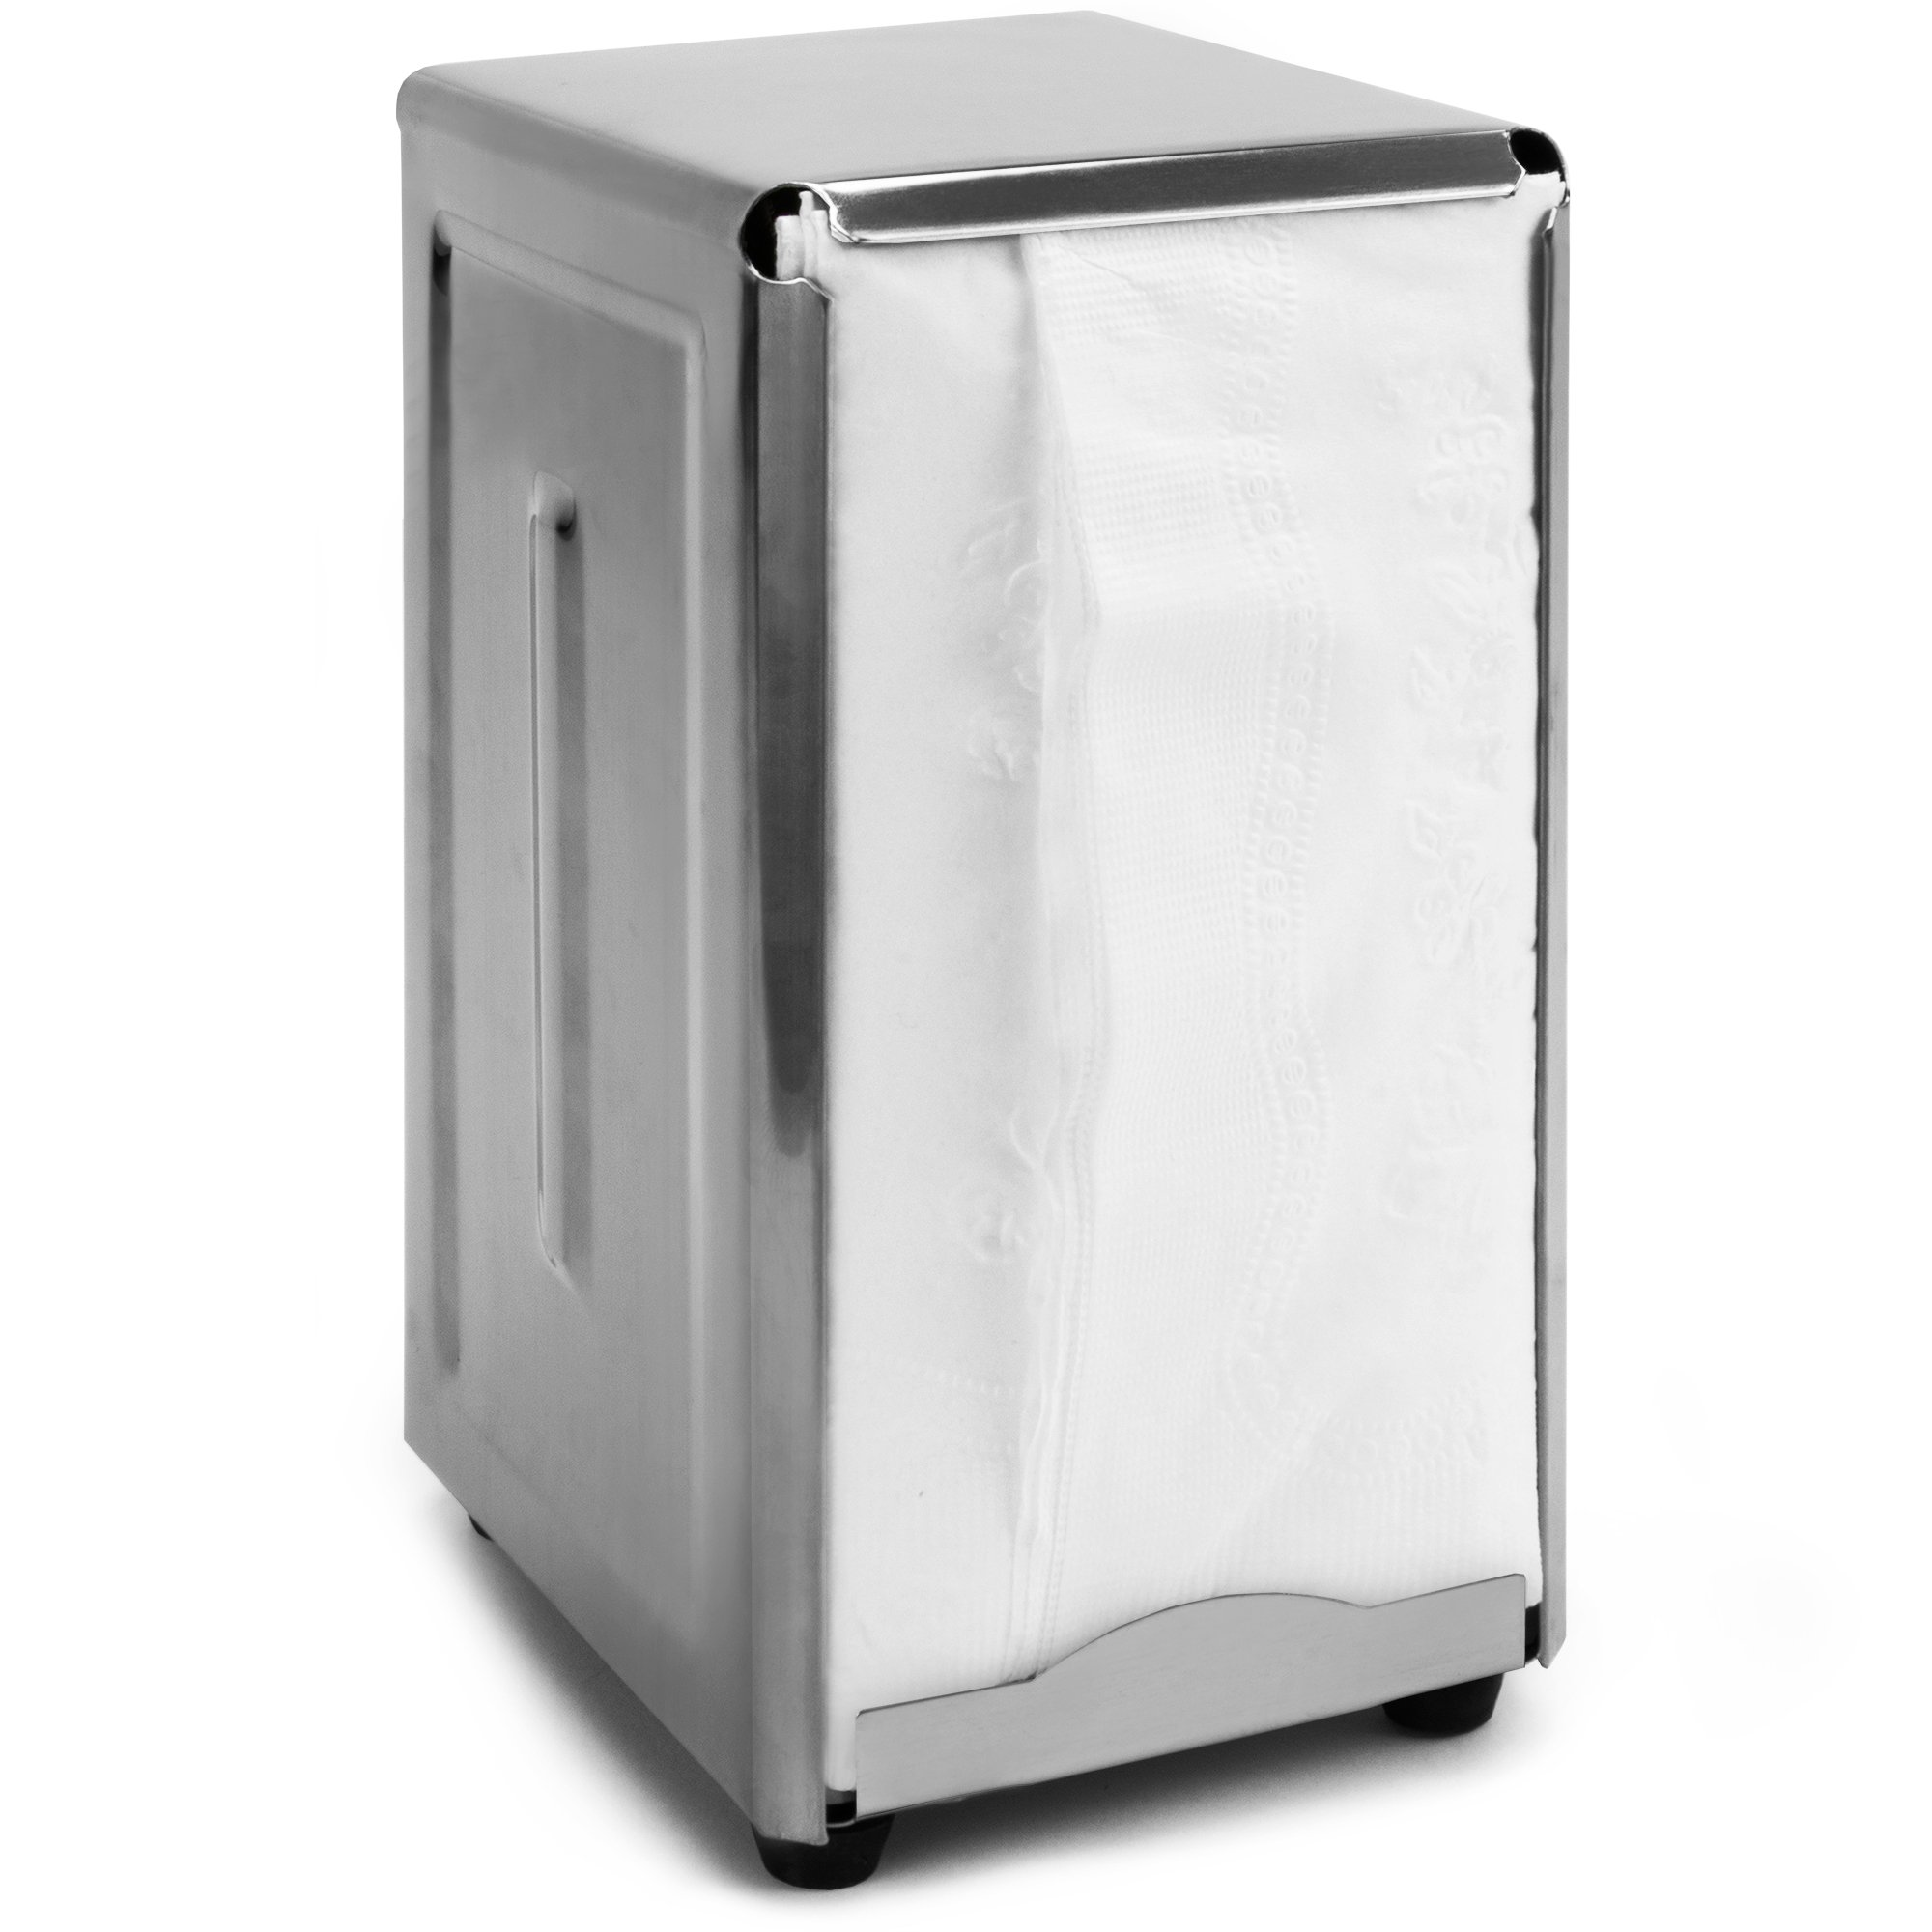 Back of House Ltd. Commercial Spring-Load Stainless Steel Tall-Fold Napkin Dispenser for Restaurants, Diners, & Home Use by Back of House Ltd.